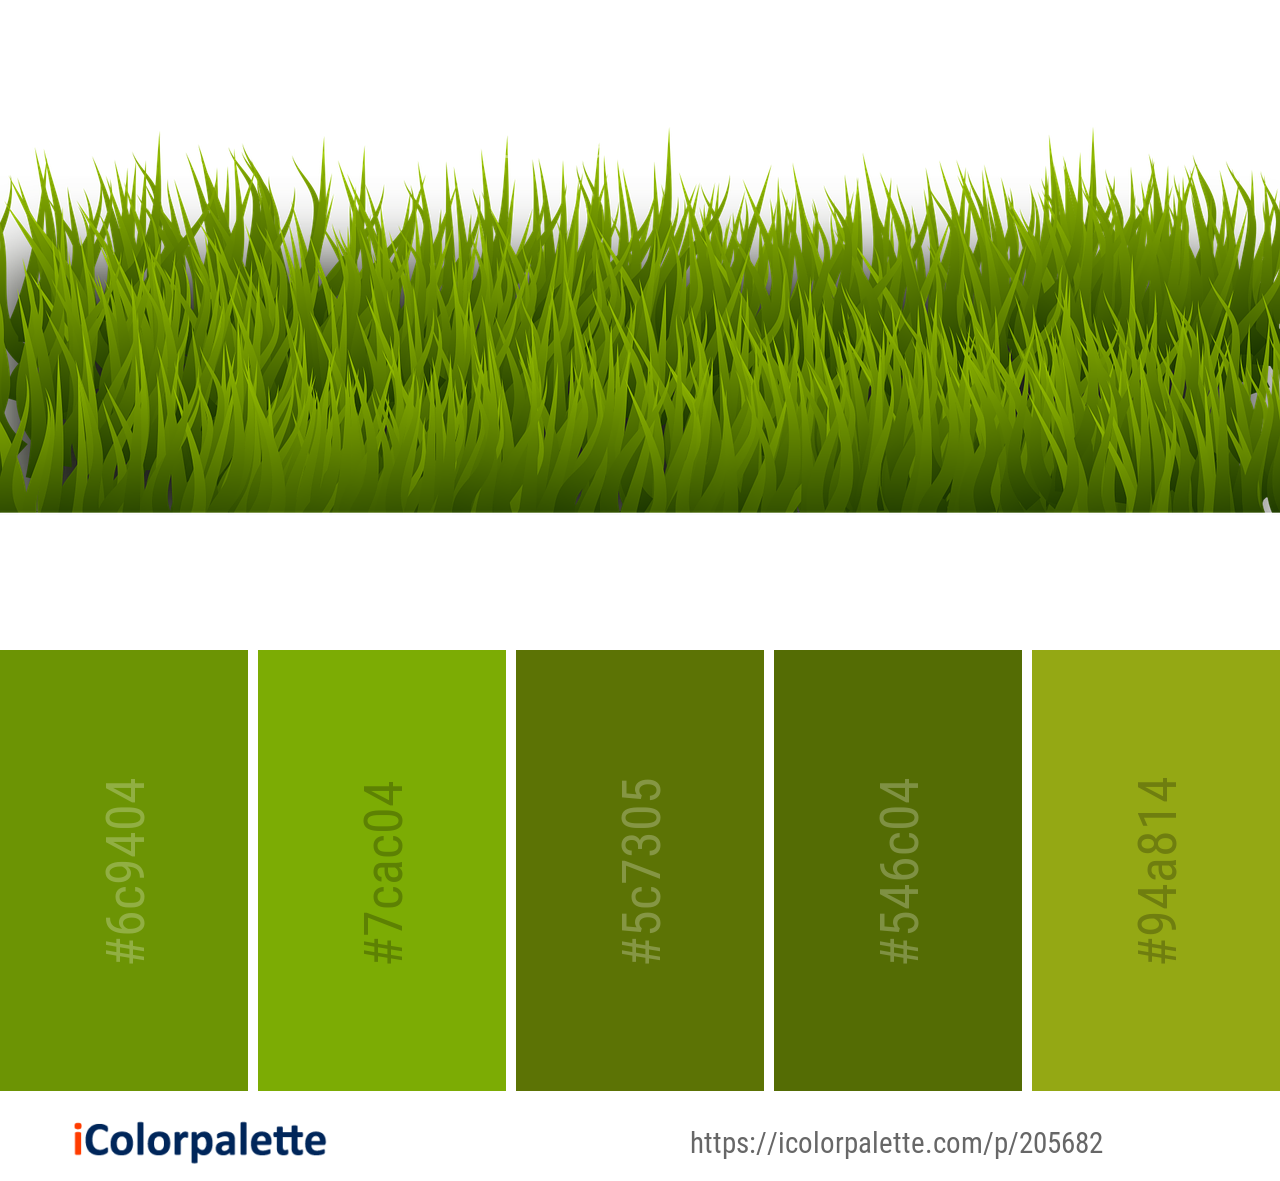 Color Palette Ideas From 3434 Grass Images Icolorpalette Color Palette Grass Grass Family